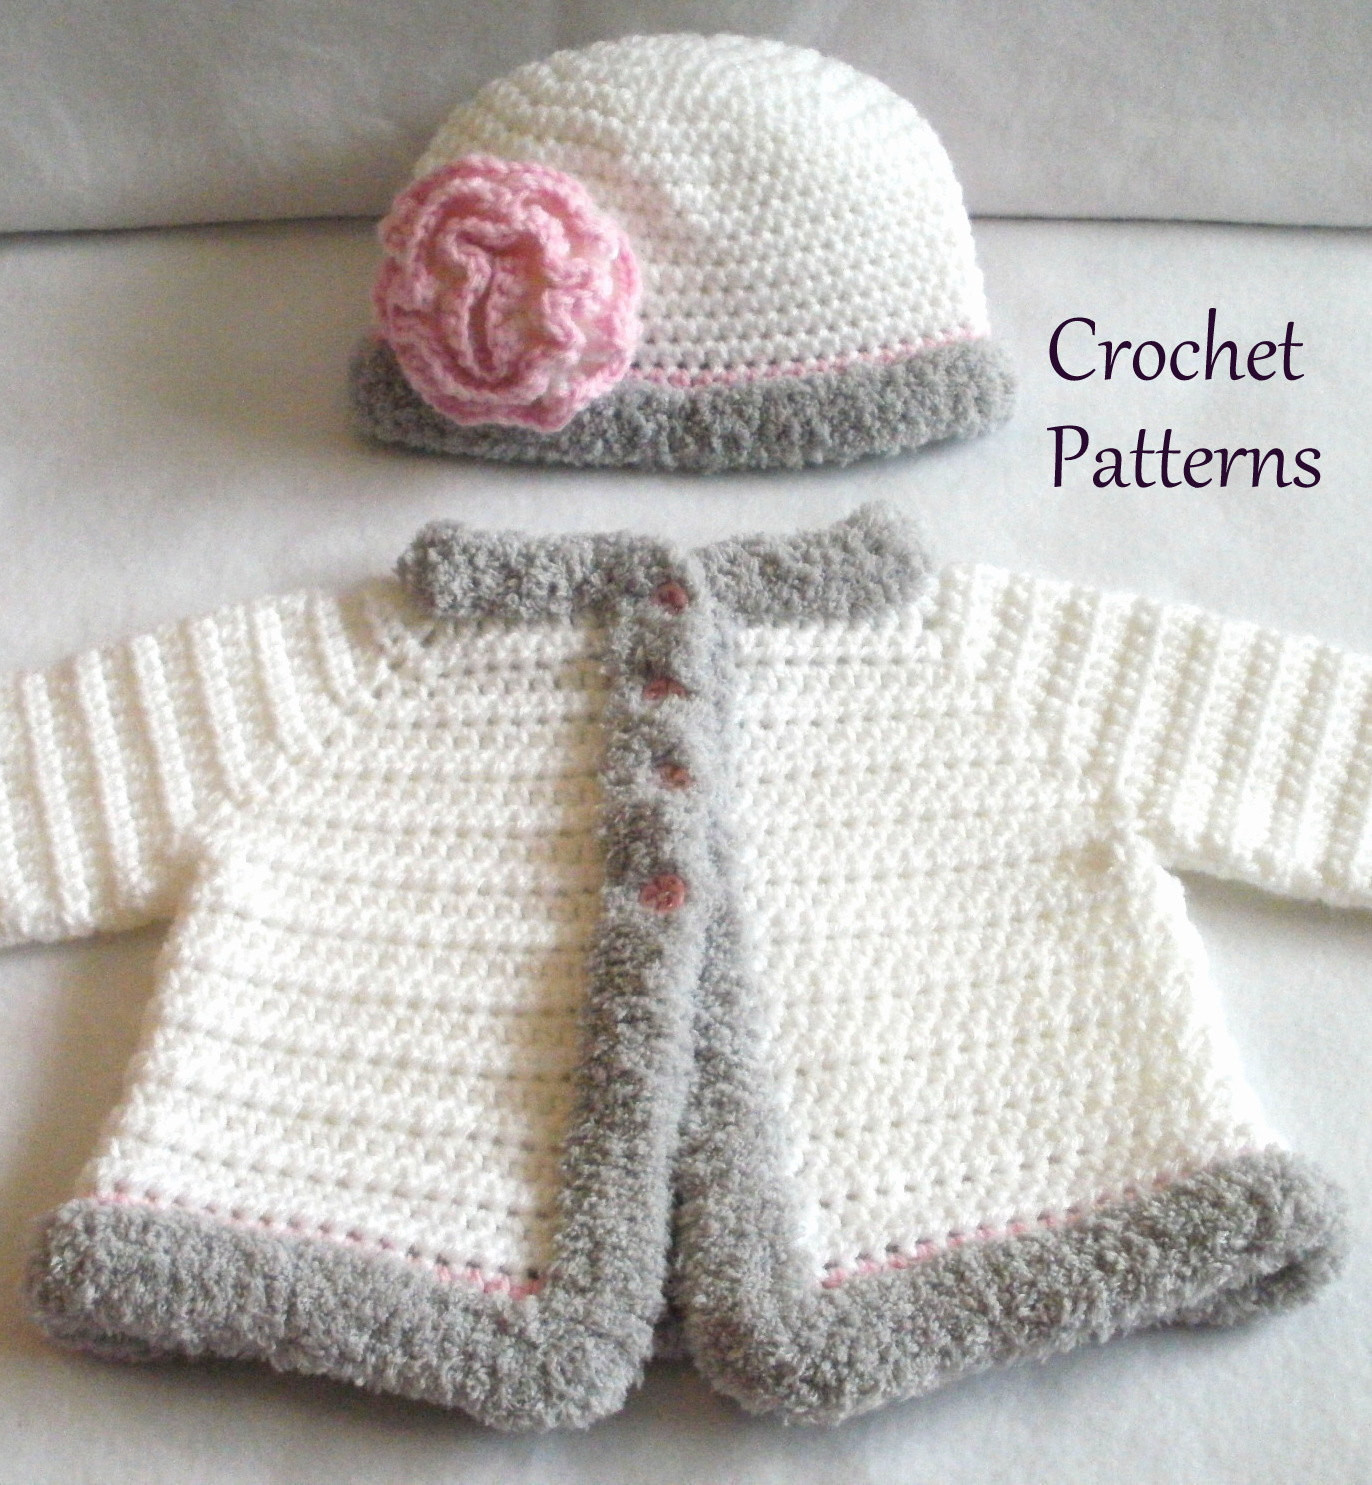 Crochet Baby Sweater Inspirational Crochet Pattern Baby Sweater & Hat Patterns the Laura Baby Of Charming 44 Images Crochet Baby Sweater